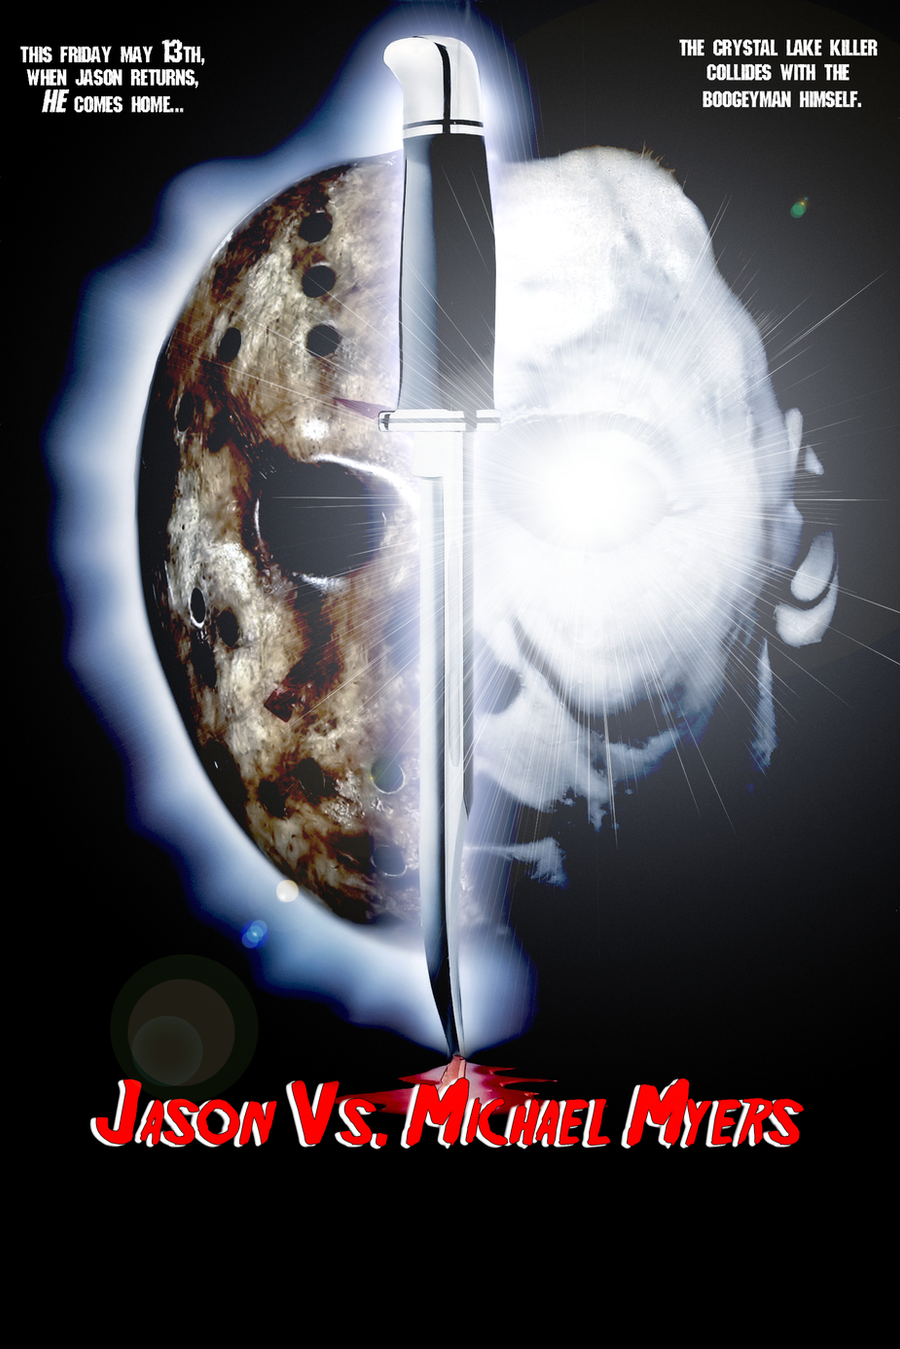 Jason Vs. Michael Myers by MrAngryDog